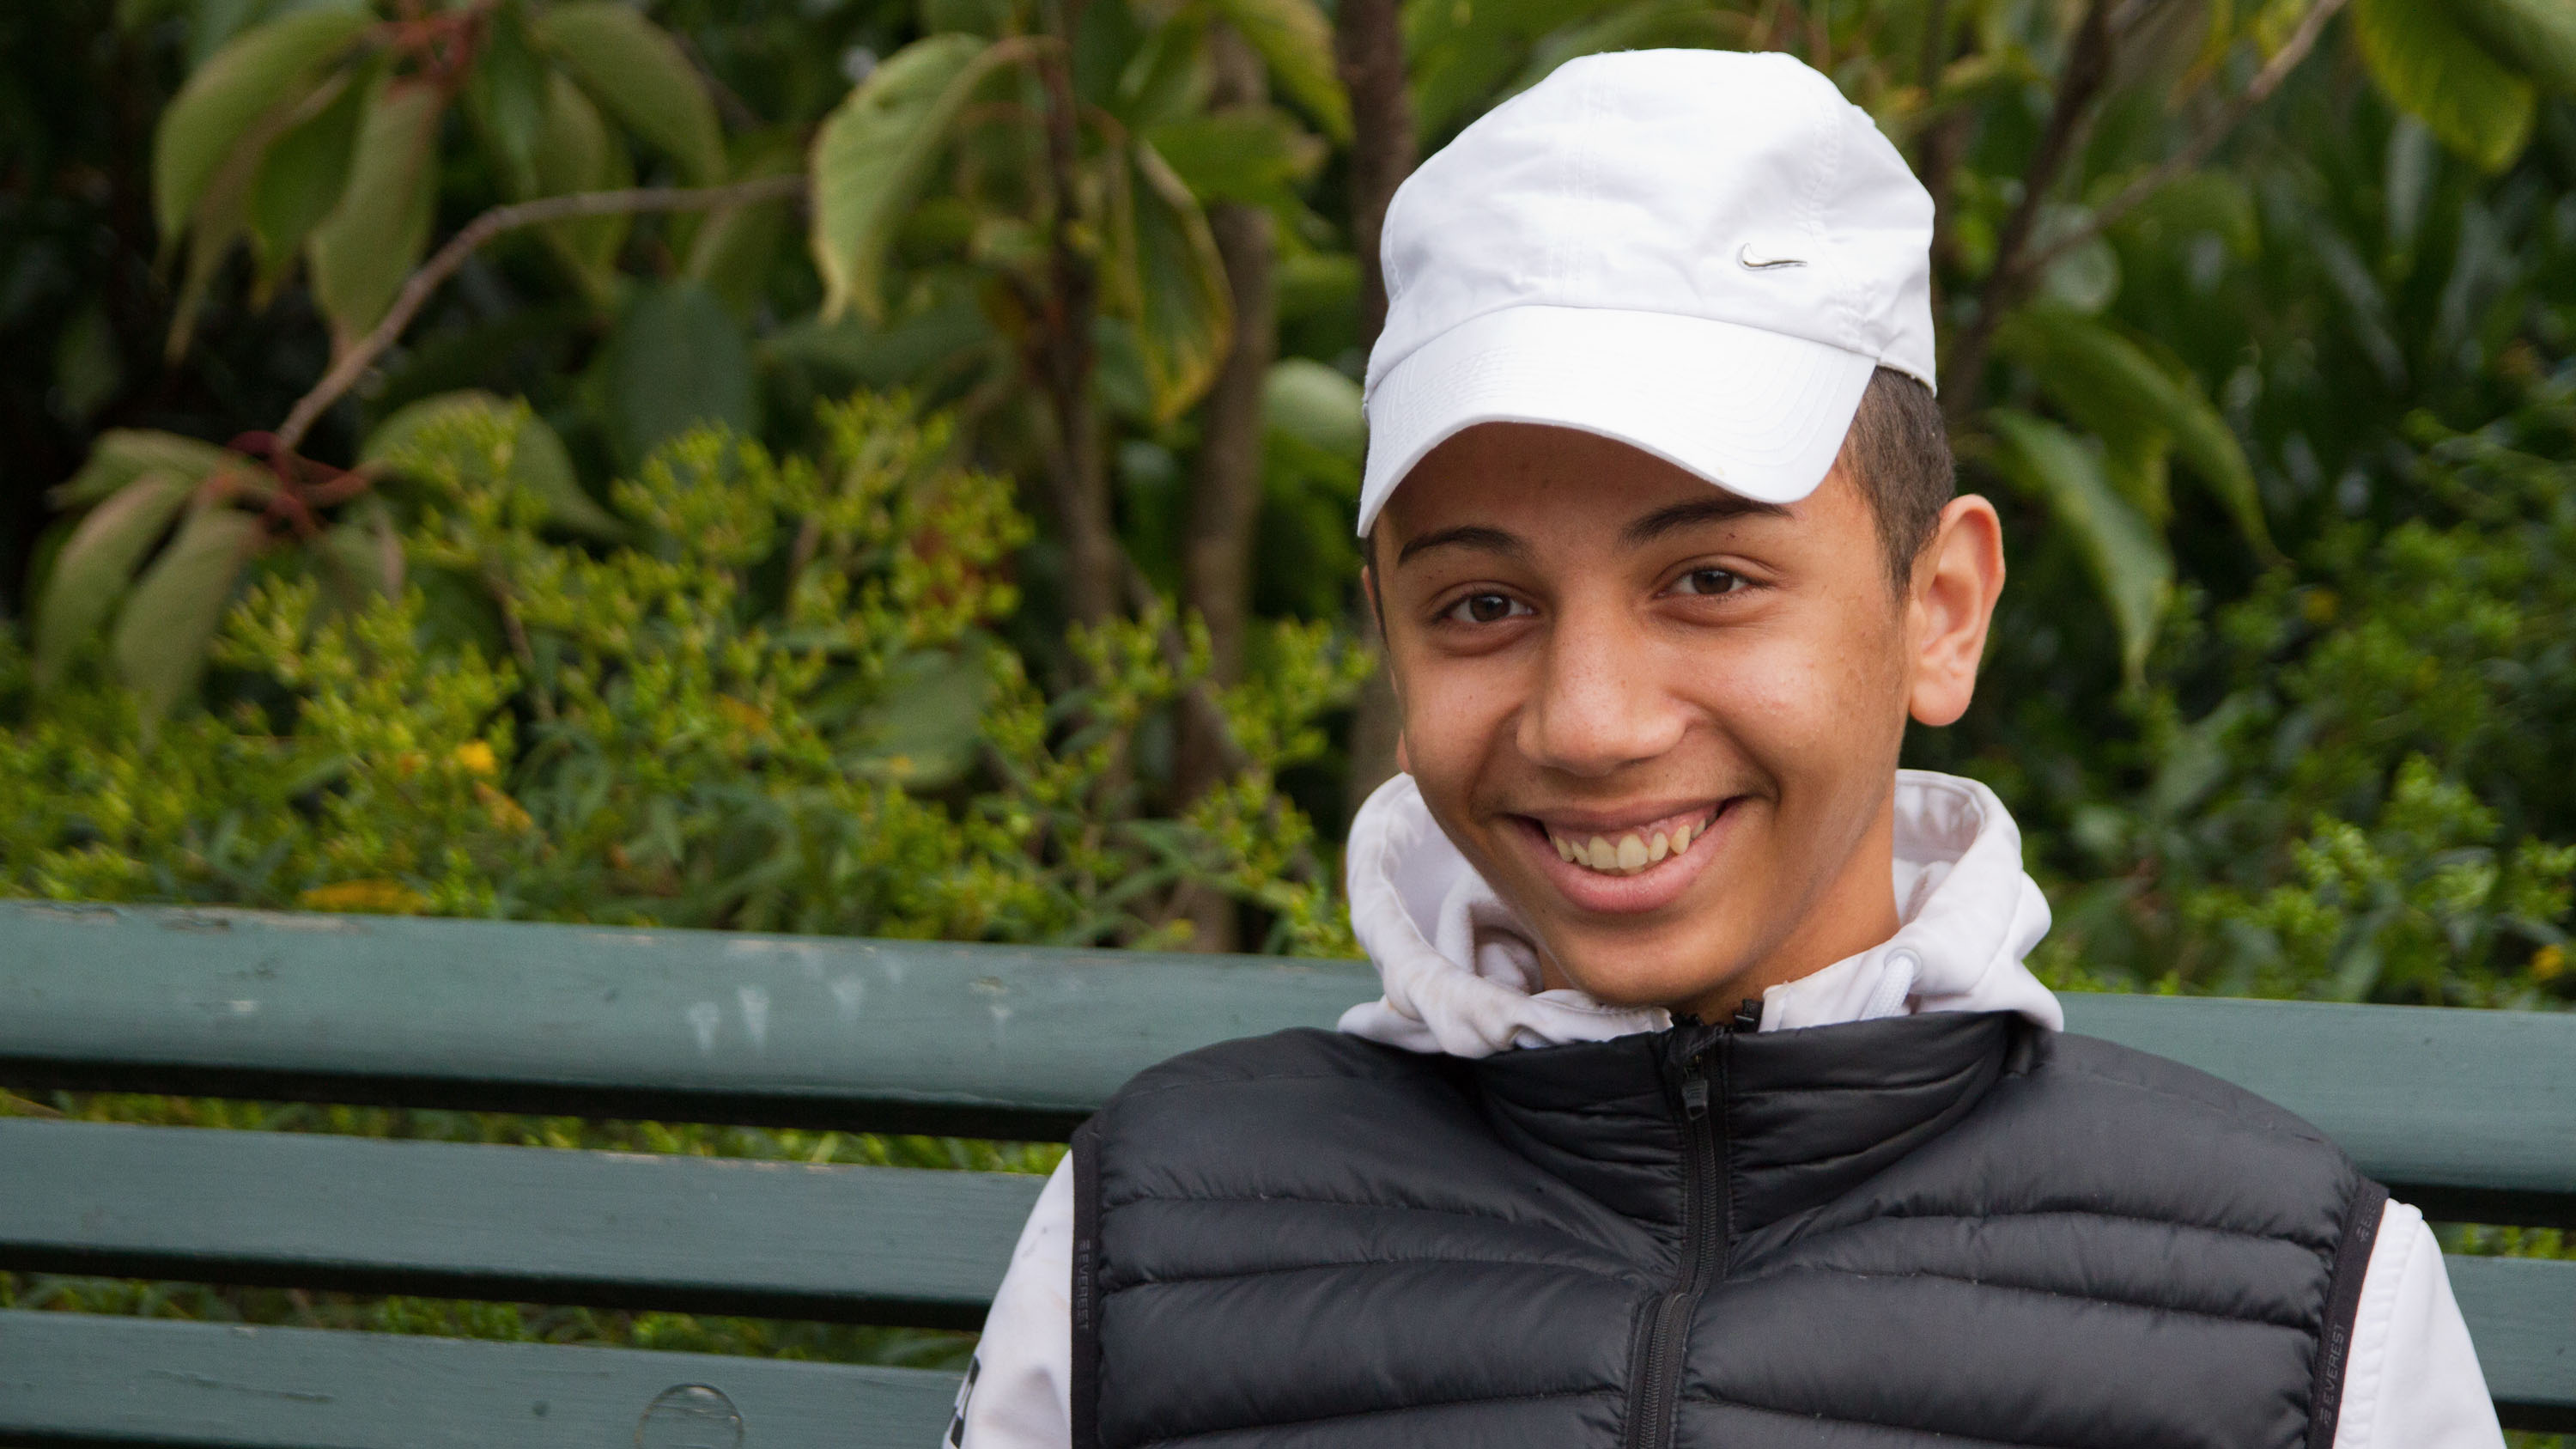 Amjad Ibrahim was only 13 when he left Syria and travelled to Sweden on his own